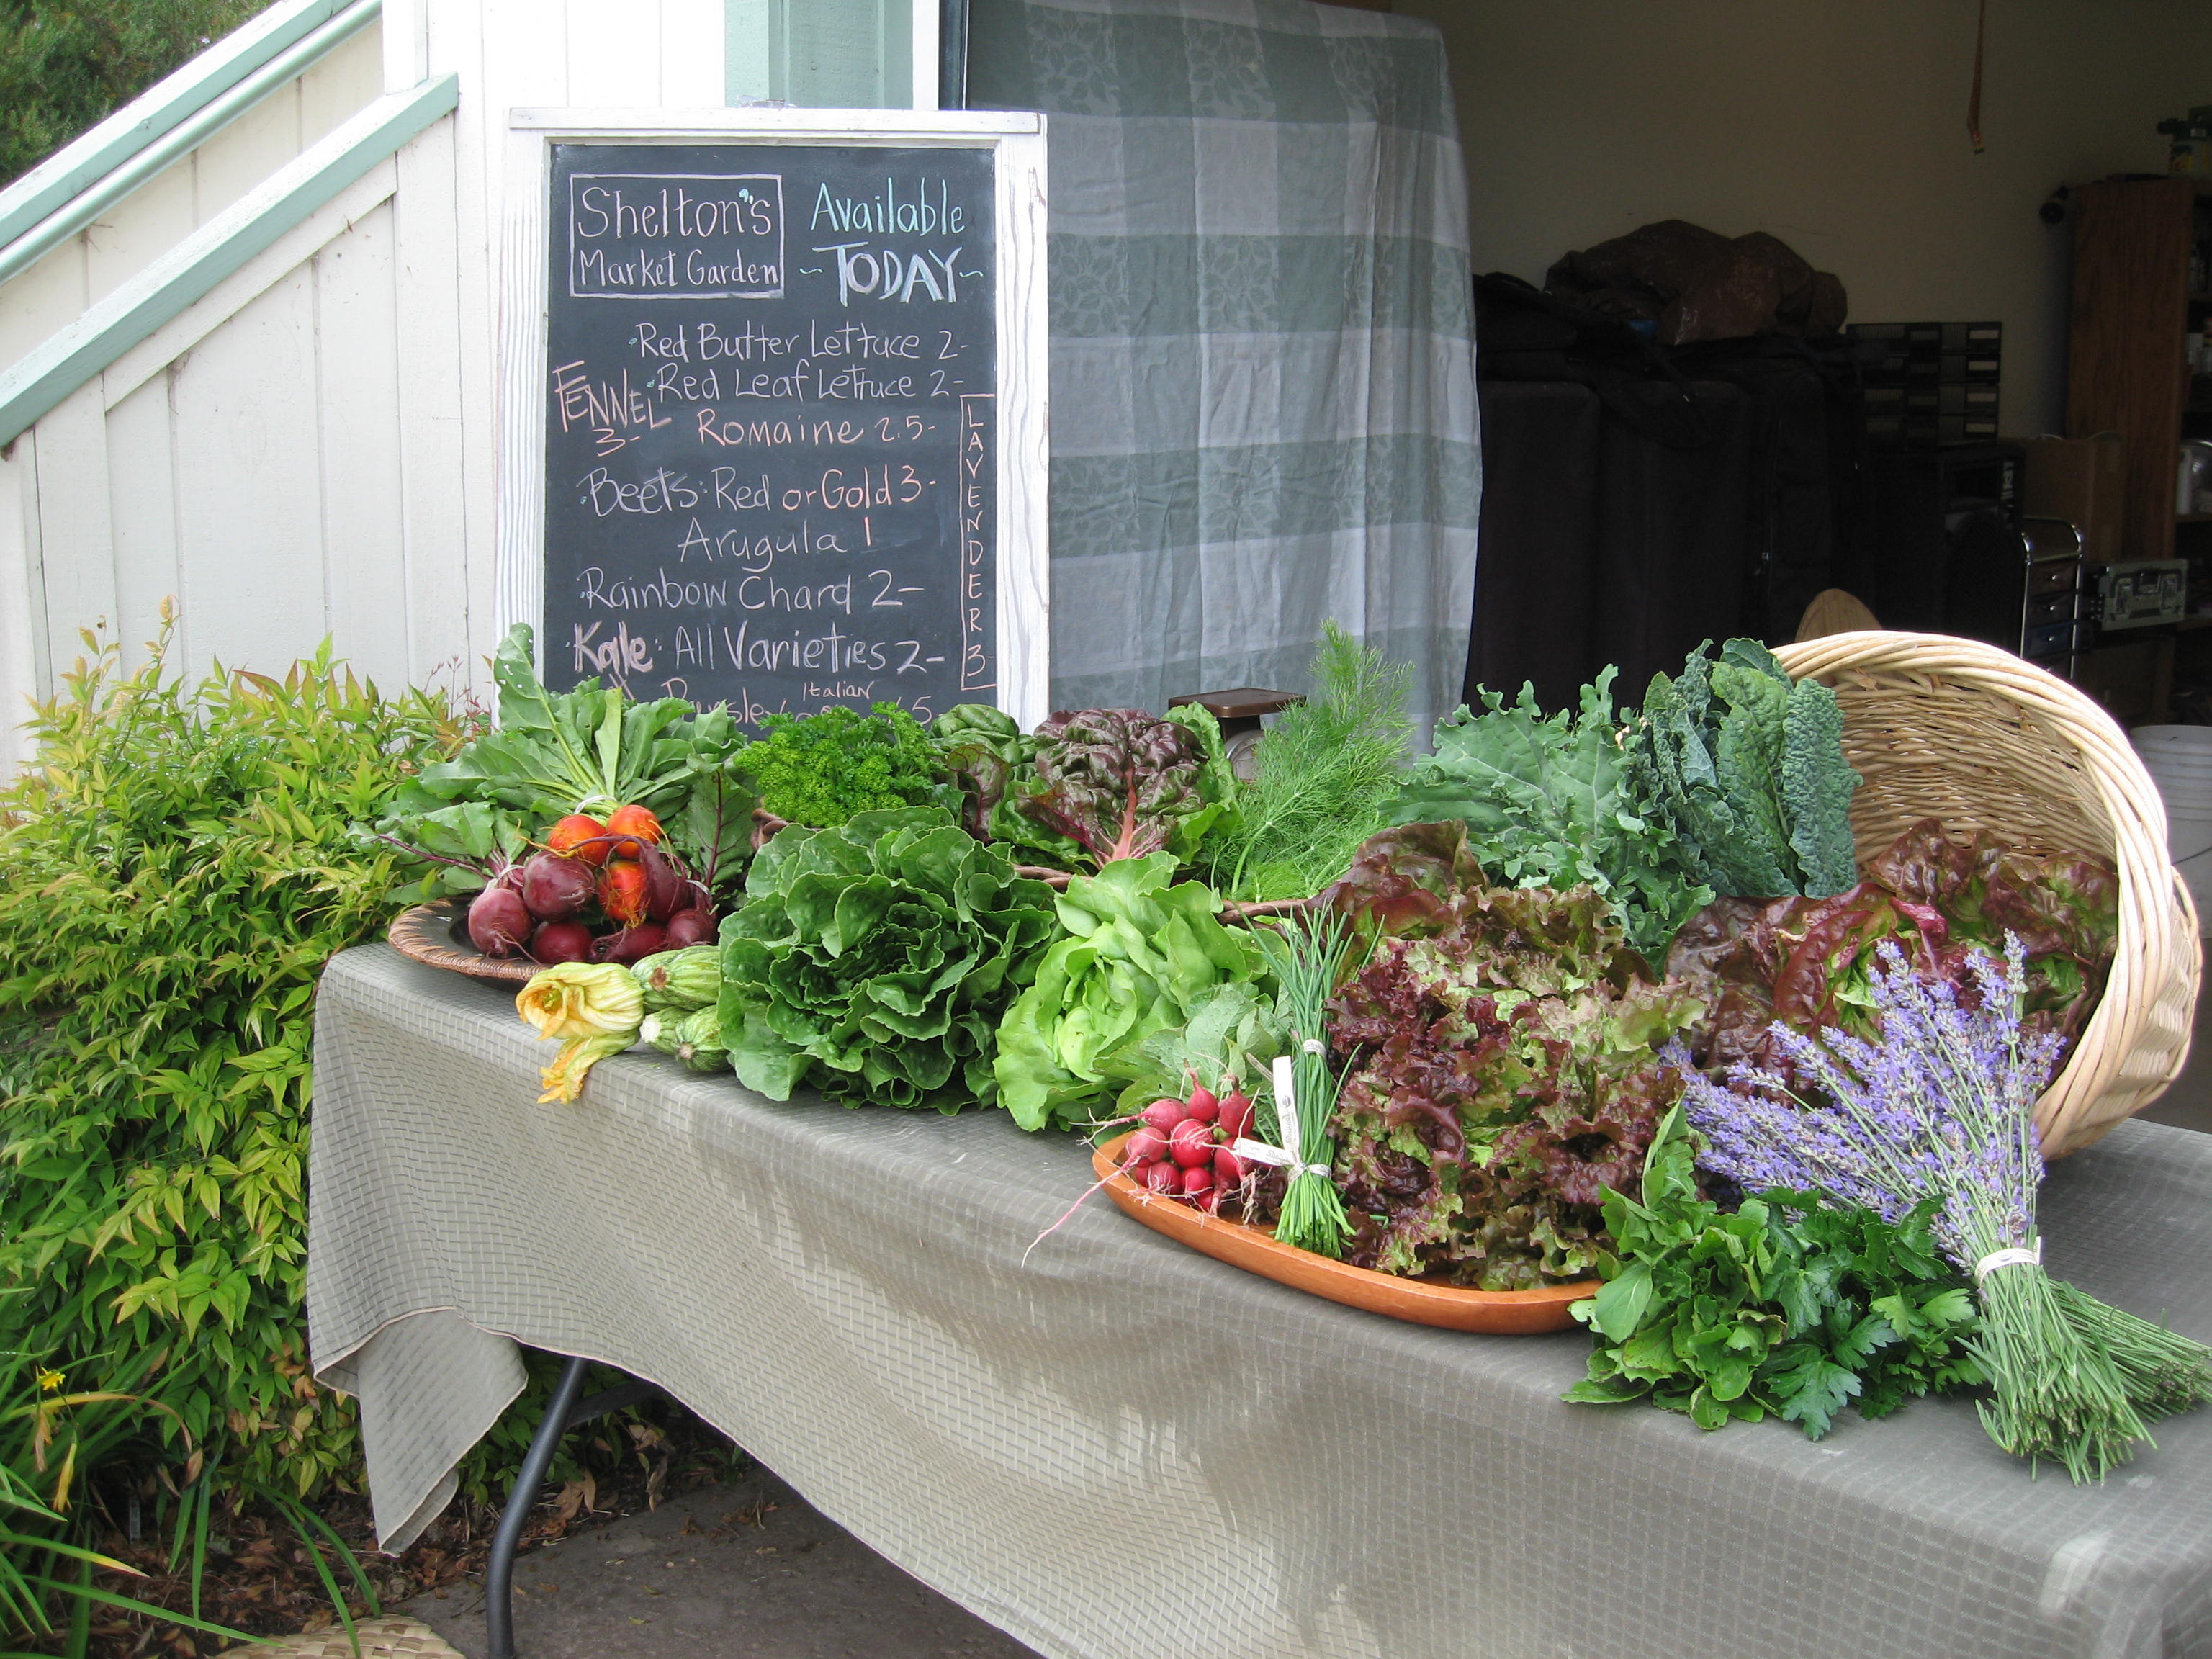 happy long weekend – farm stand open saturday 8 noon